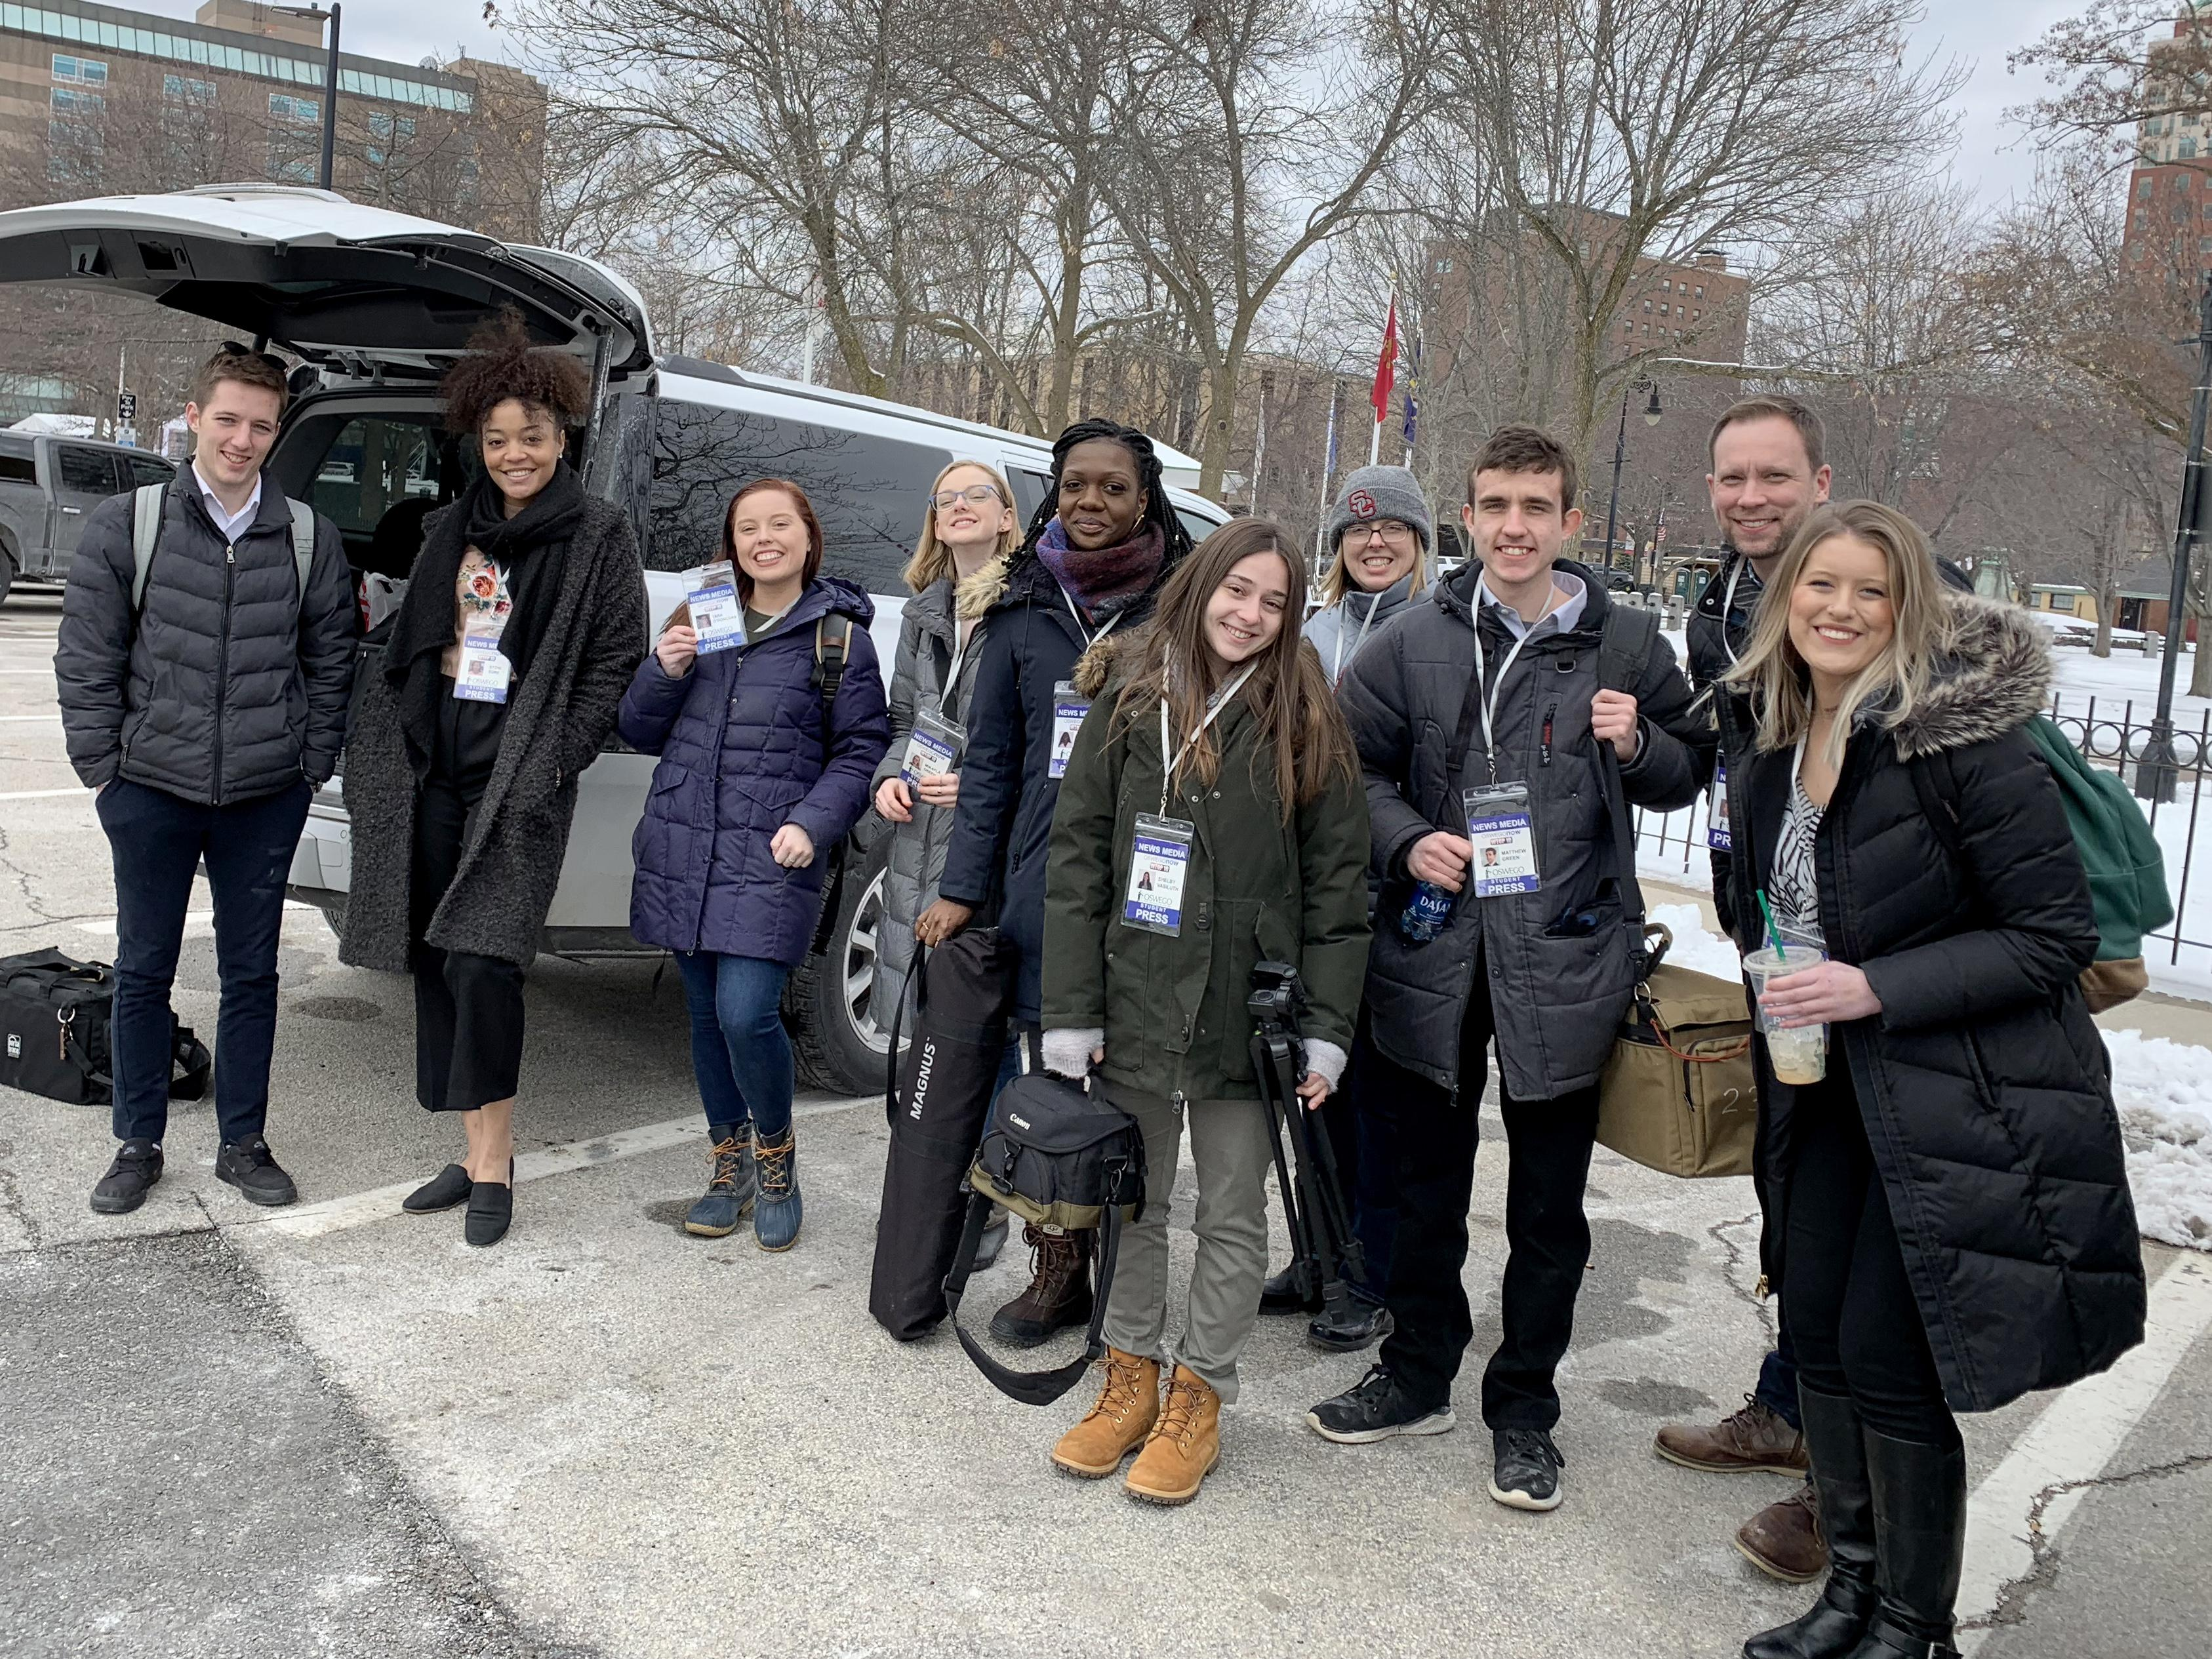 Broadcasting students traveled to New Hampshire to cover the presidential primary